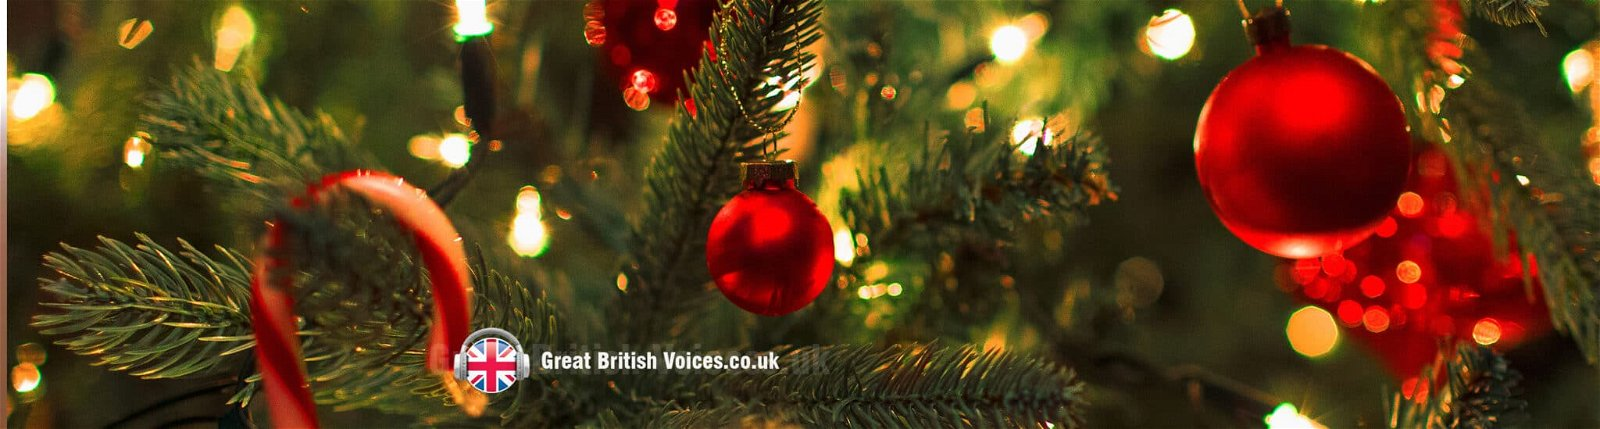 hire-christmas-character-voiceover-artists-great-british-voices